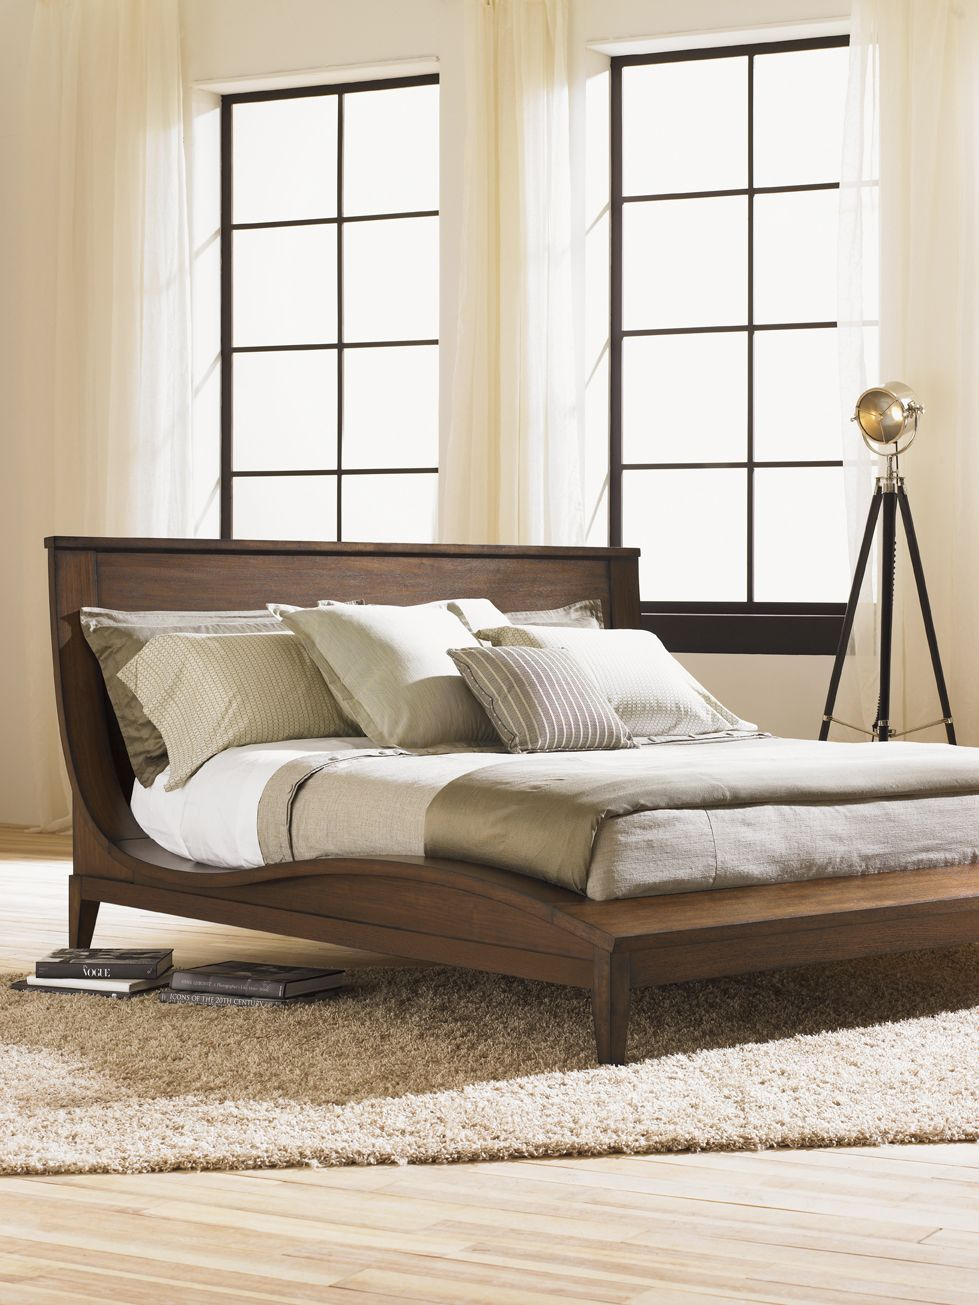 Merveilleux Lexington Home Brand Furniture Stores By Goods NC Discount Furniture